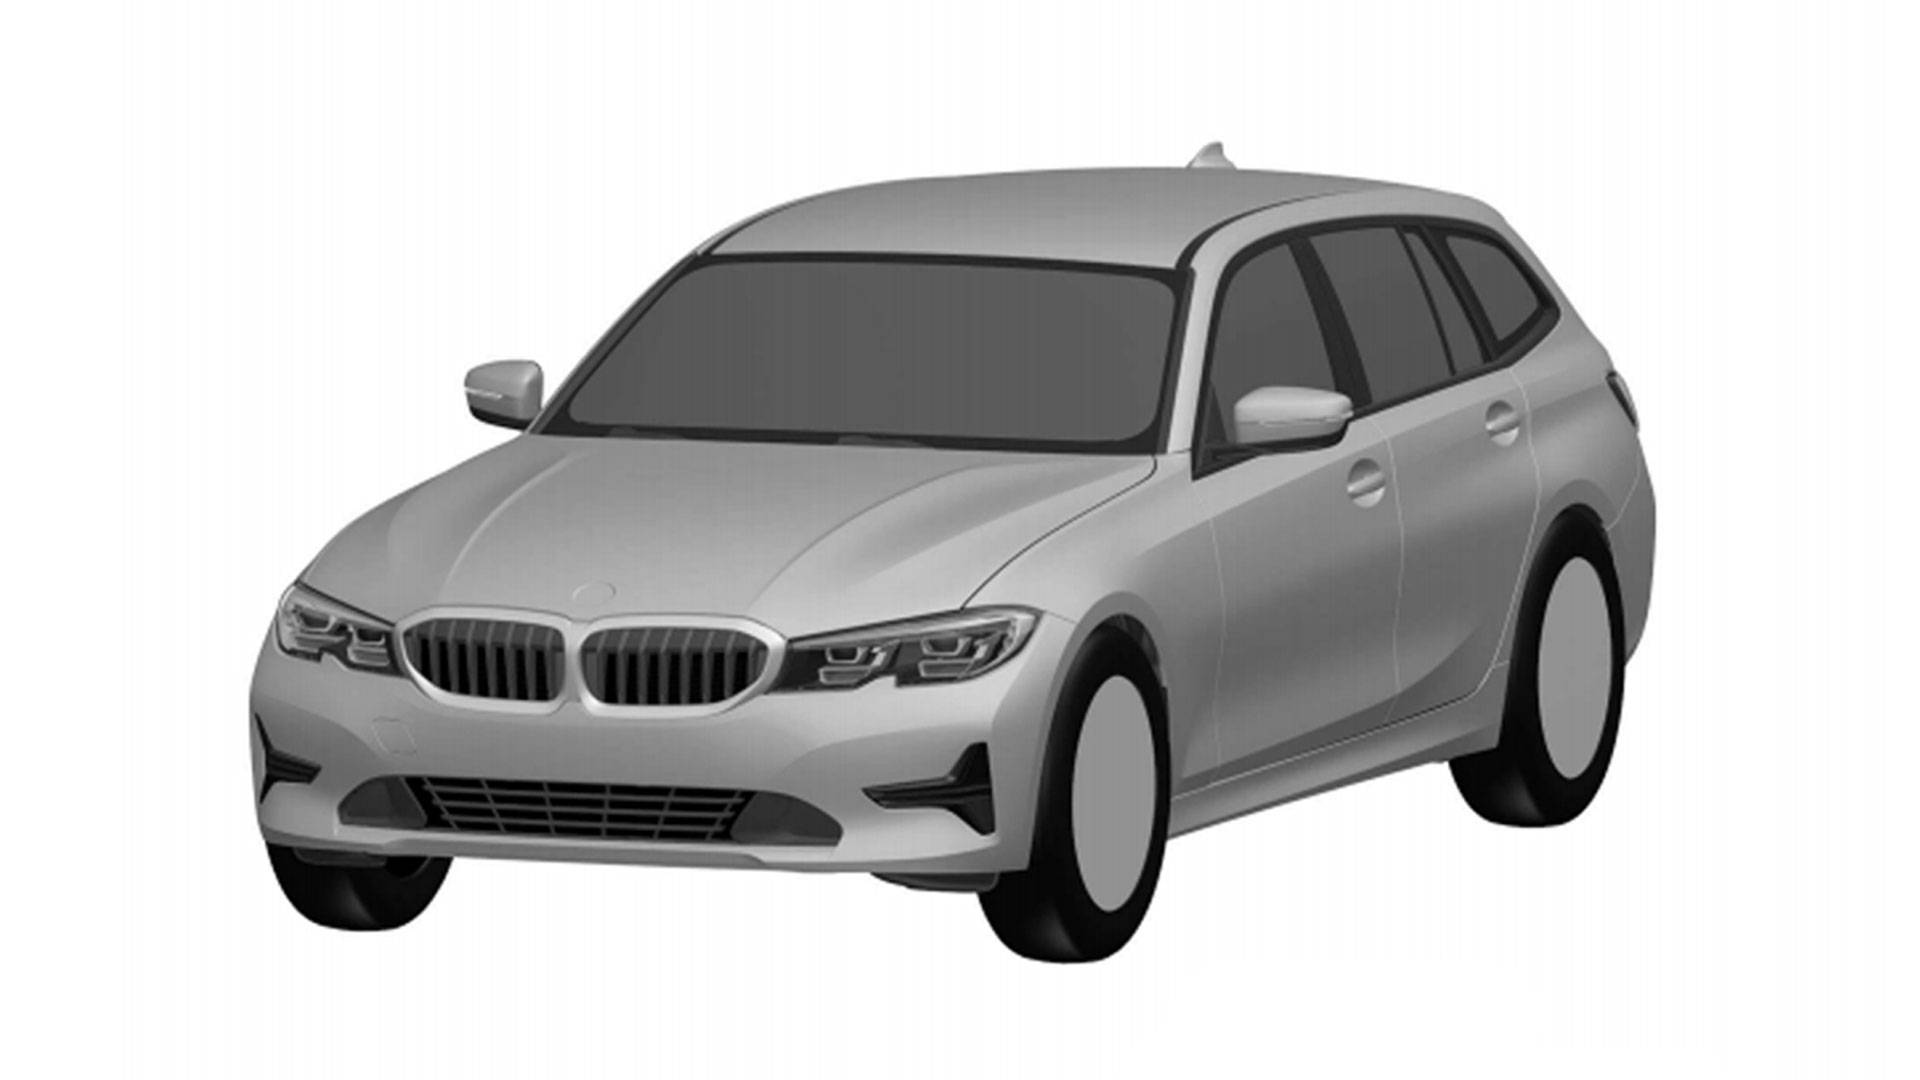 BMW_3_Series_Touring_design_01